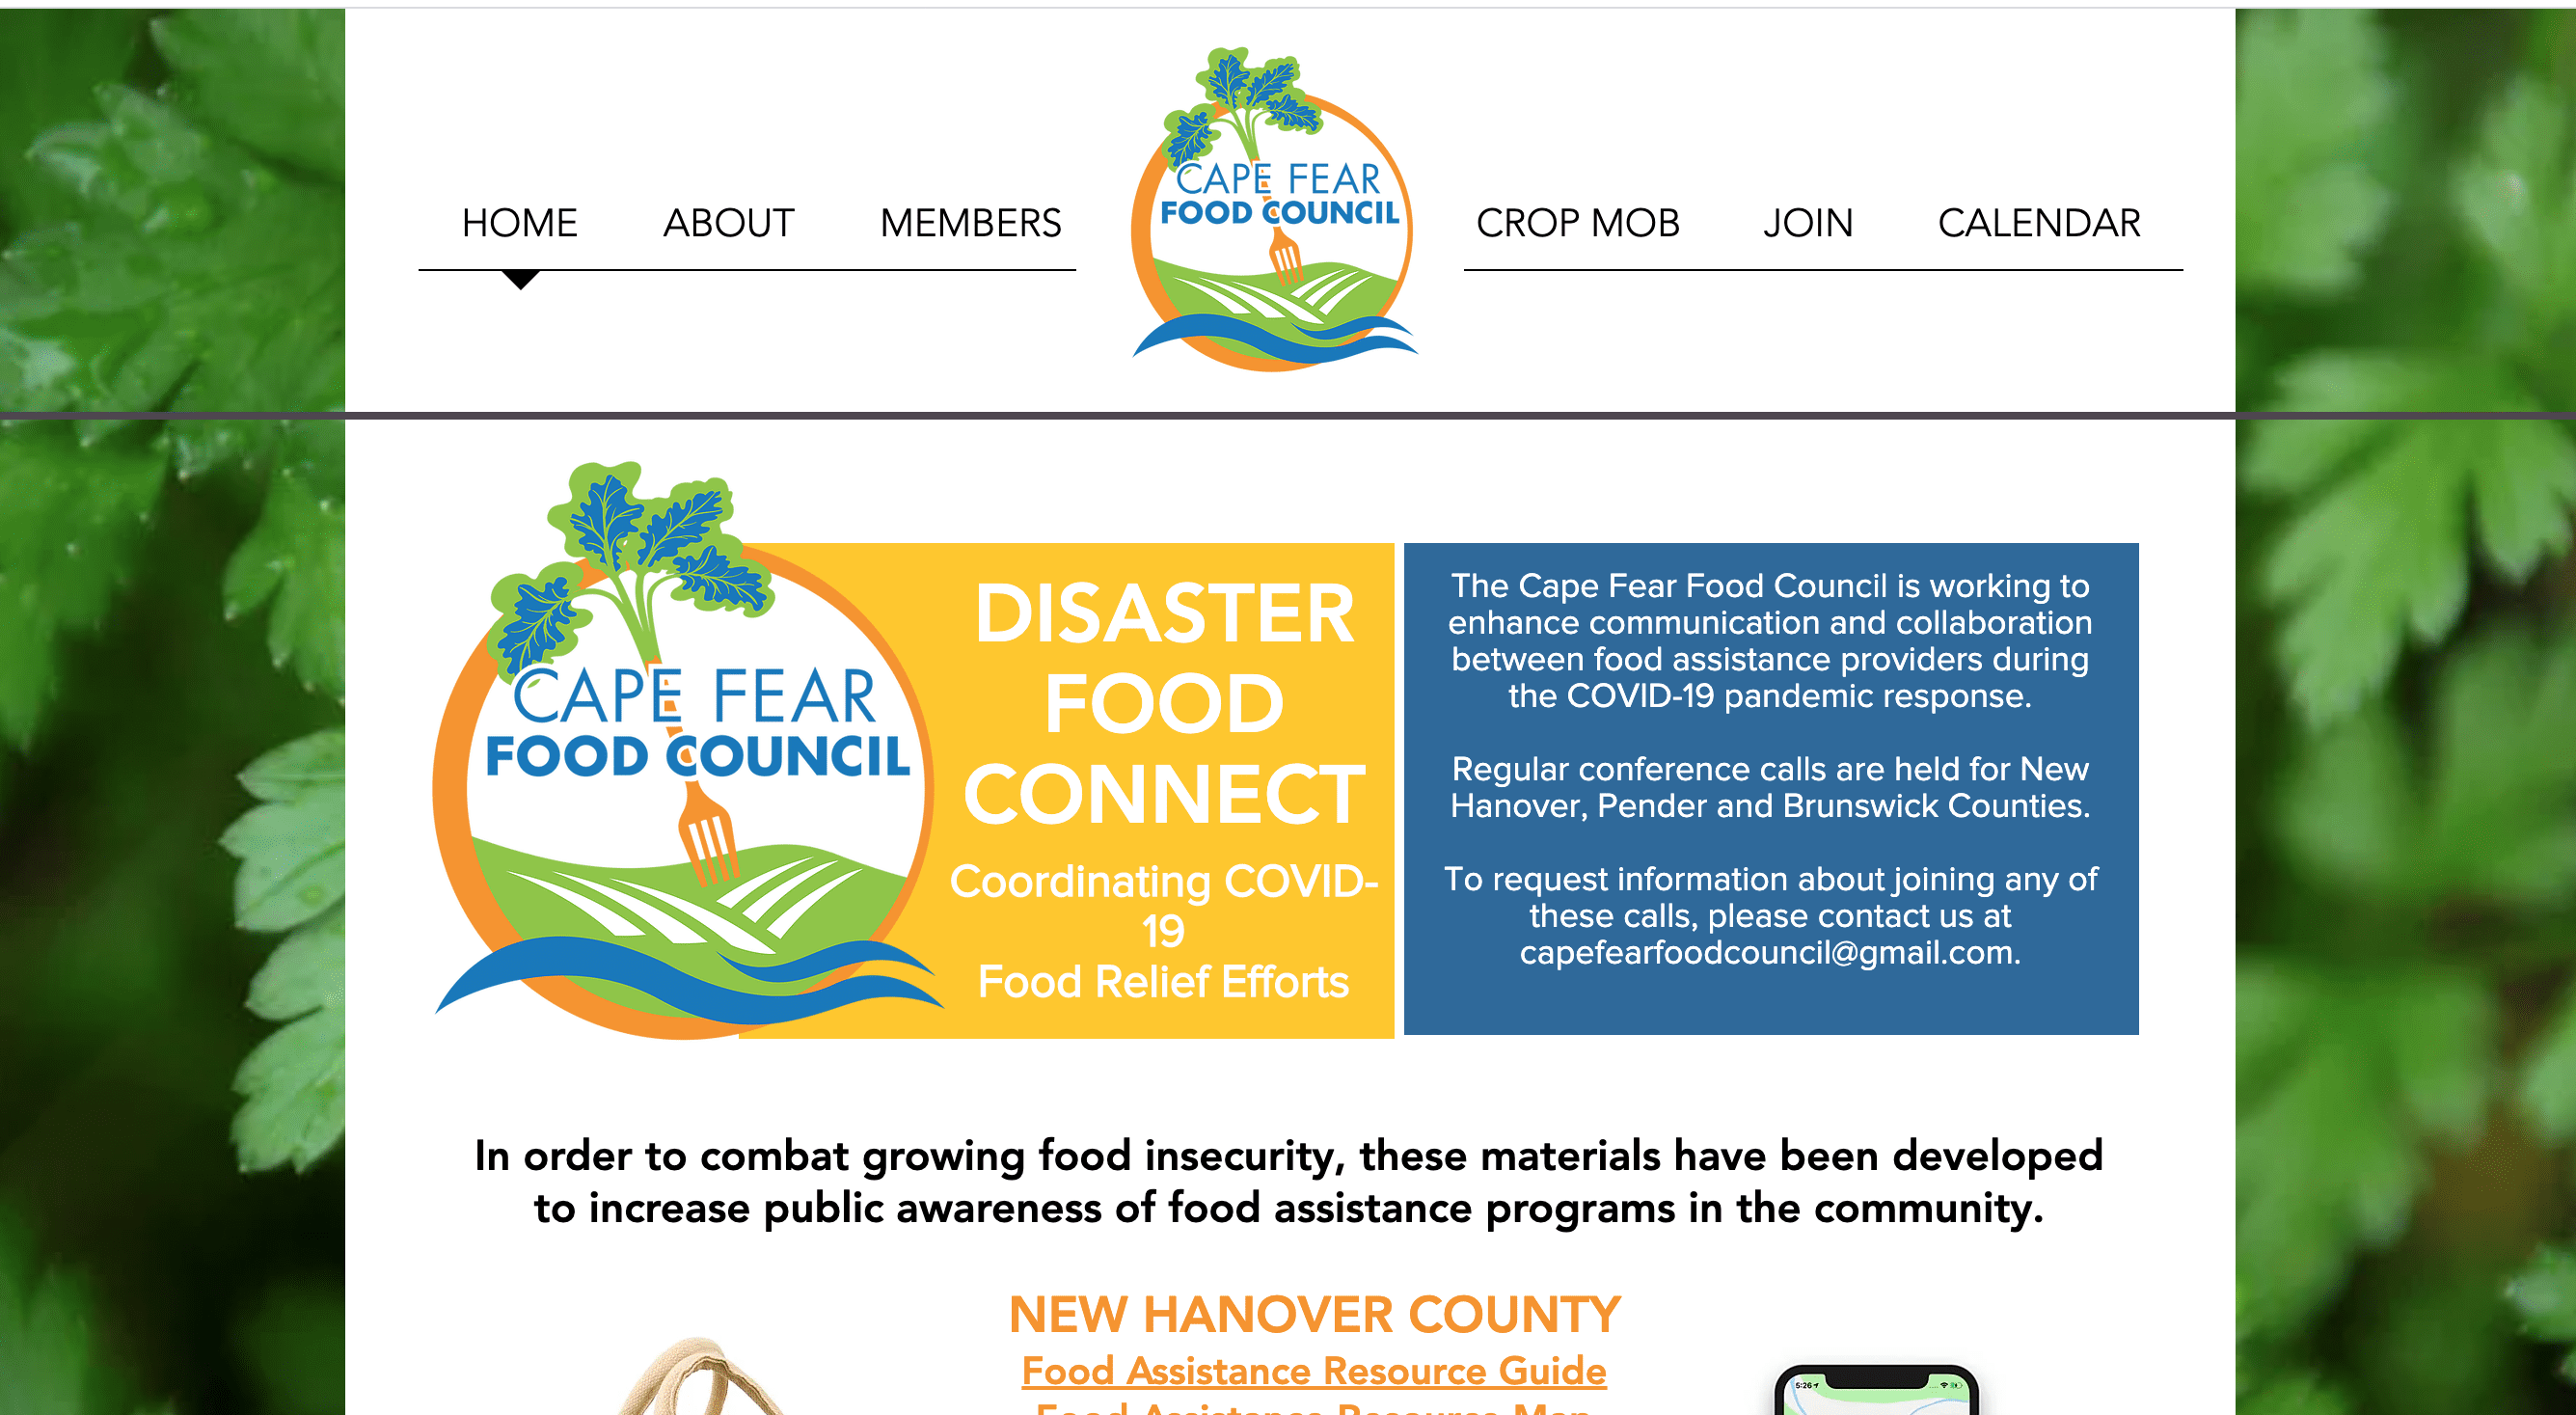 Cape Fear Food Council has created food resource lists and maps for New Hanover, Pender, and Brunswick counties.